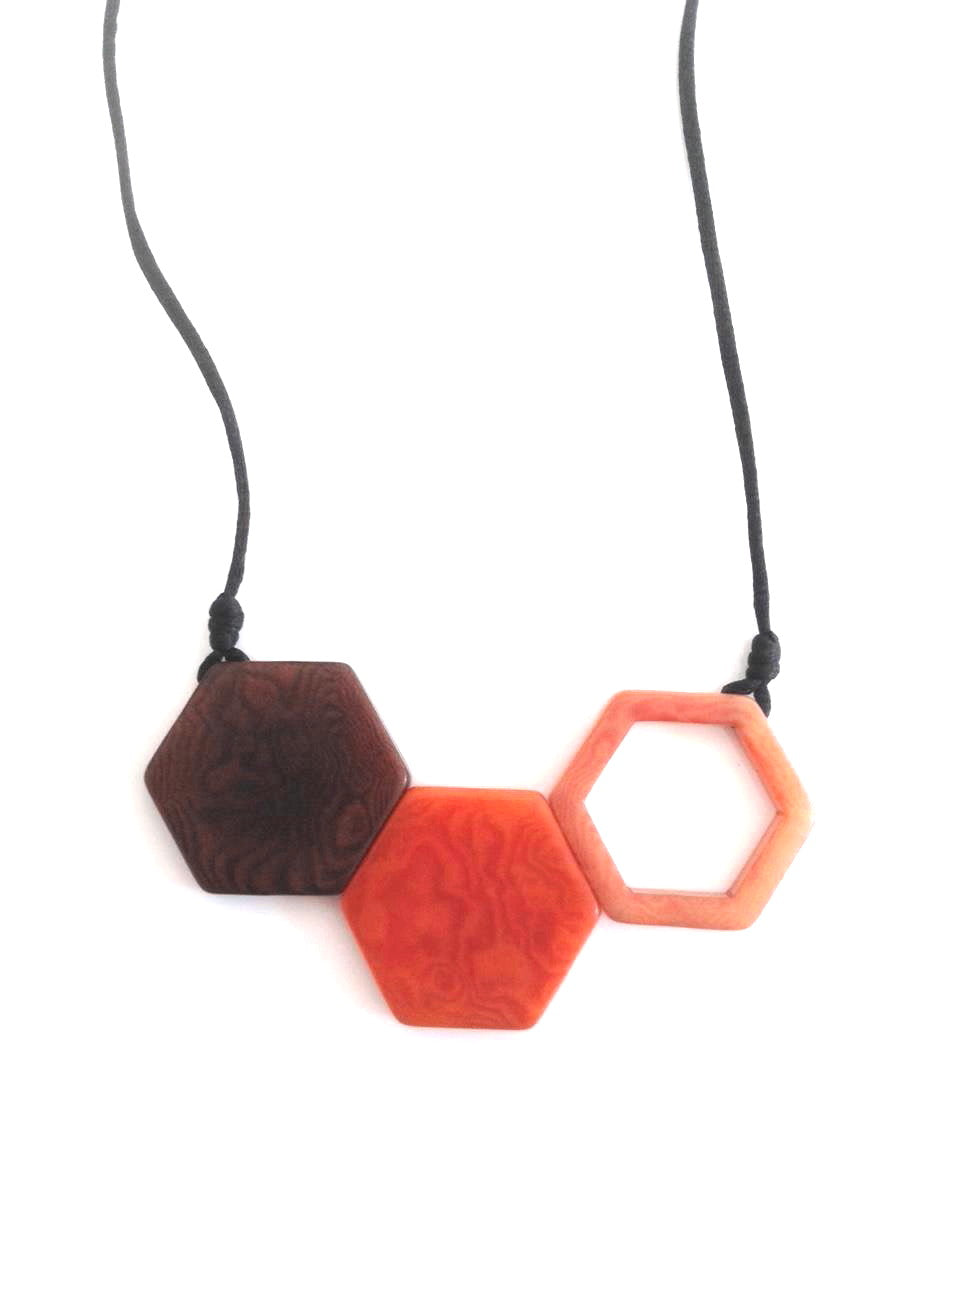 Rombos Necklace - Orange & Dark Brown Tones